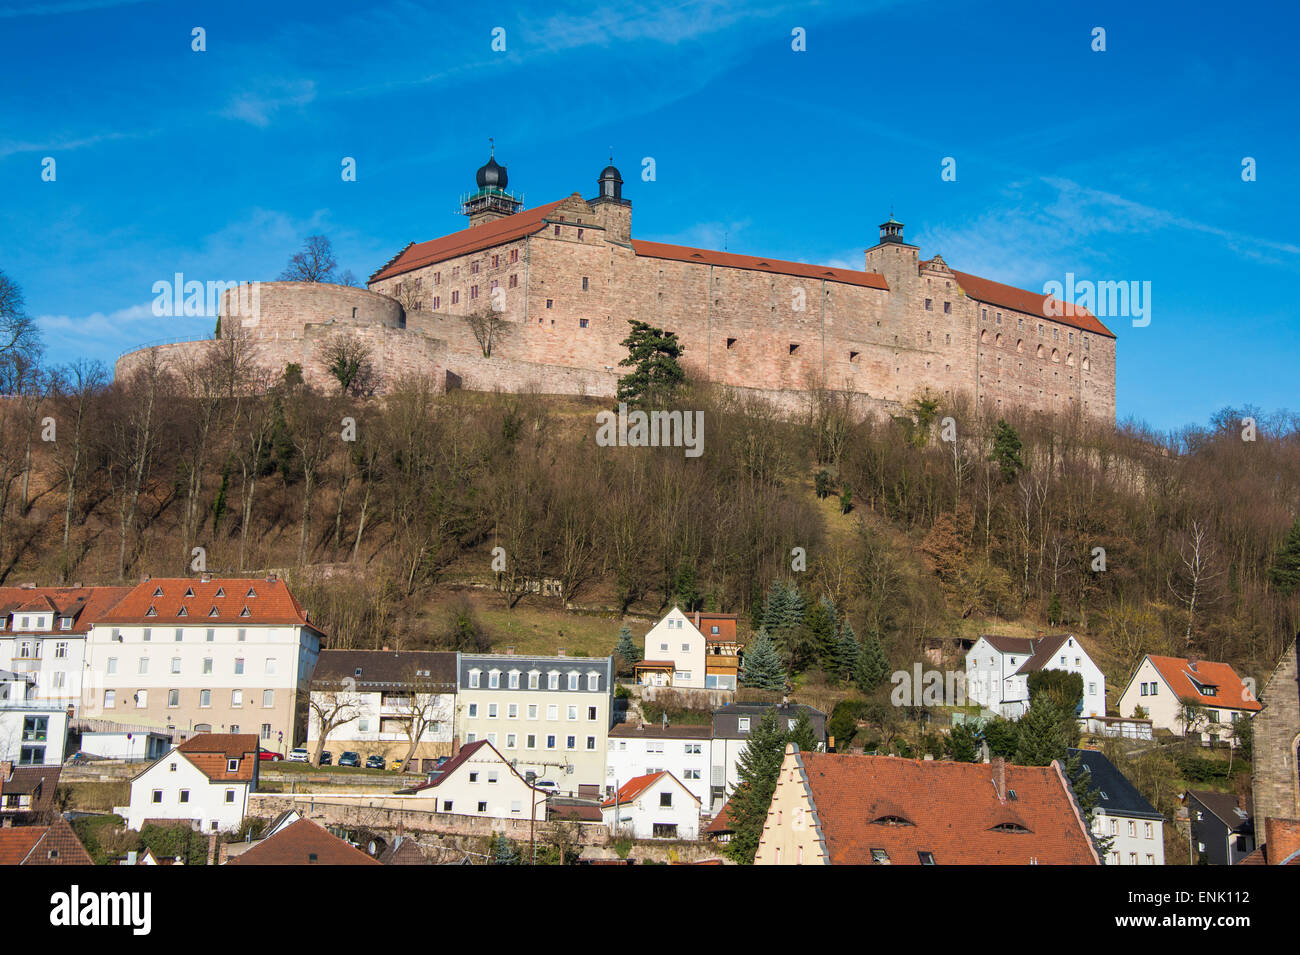 Renaissance castle of Plassenburg with church of St. Petri in the foreground, Kulmbach, Upper Franconia, Bavaria, - Stock Image